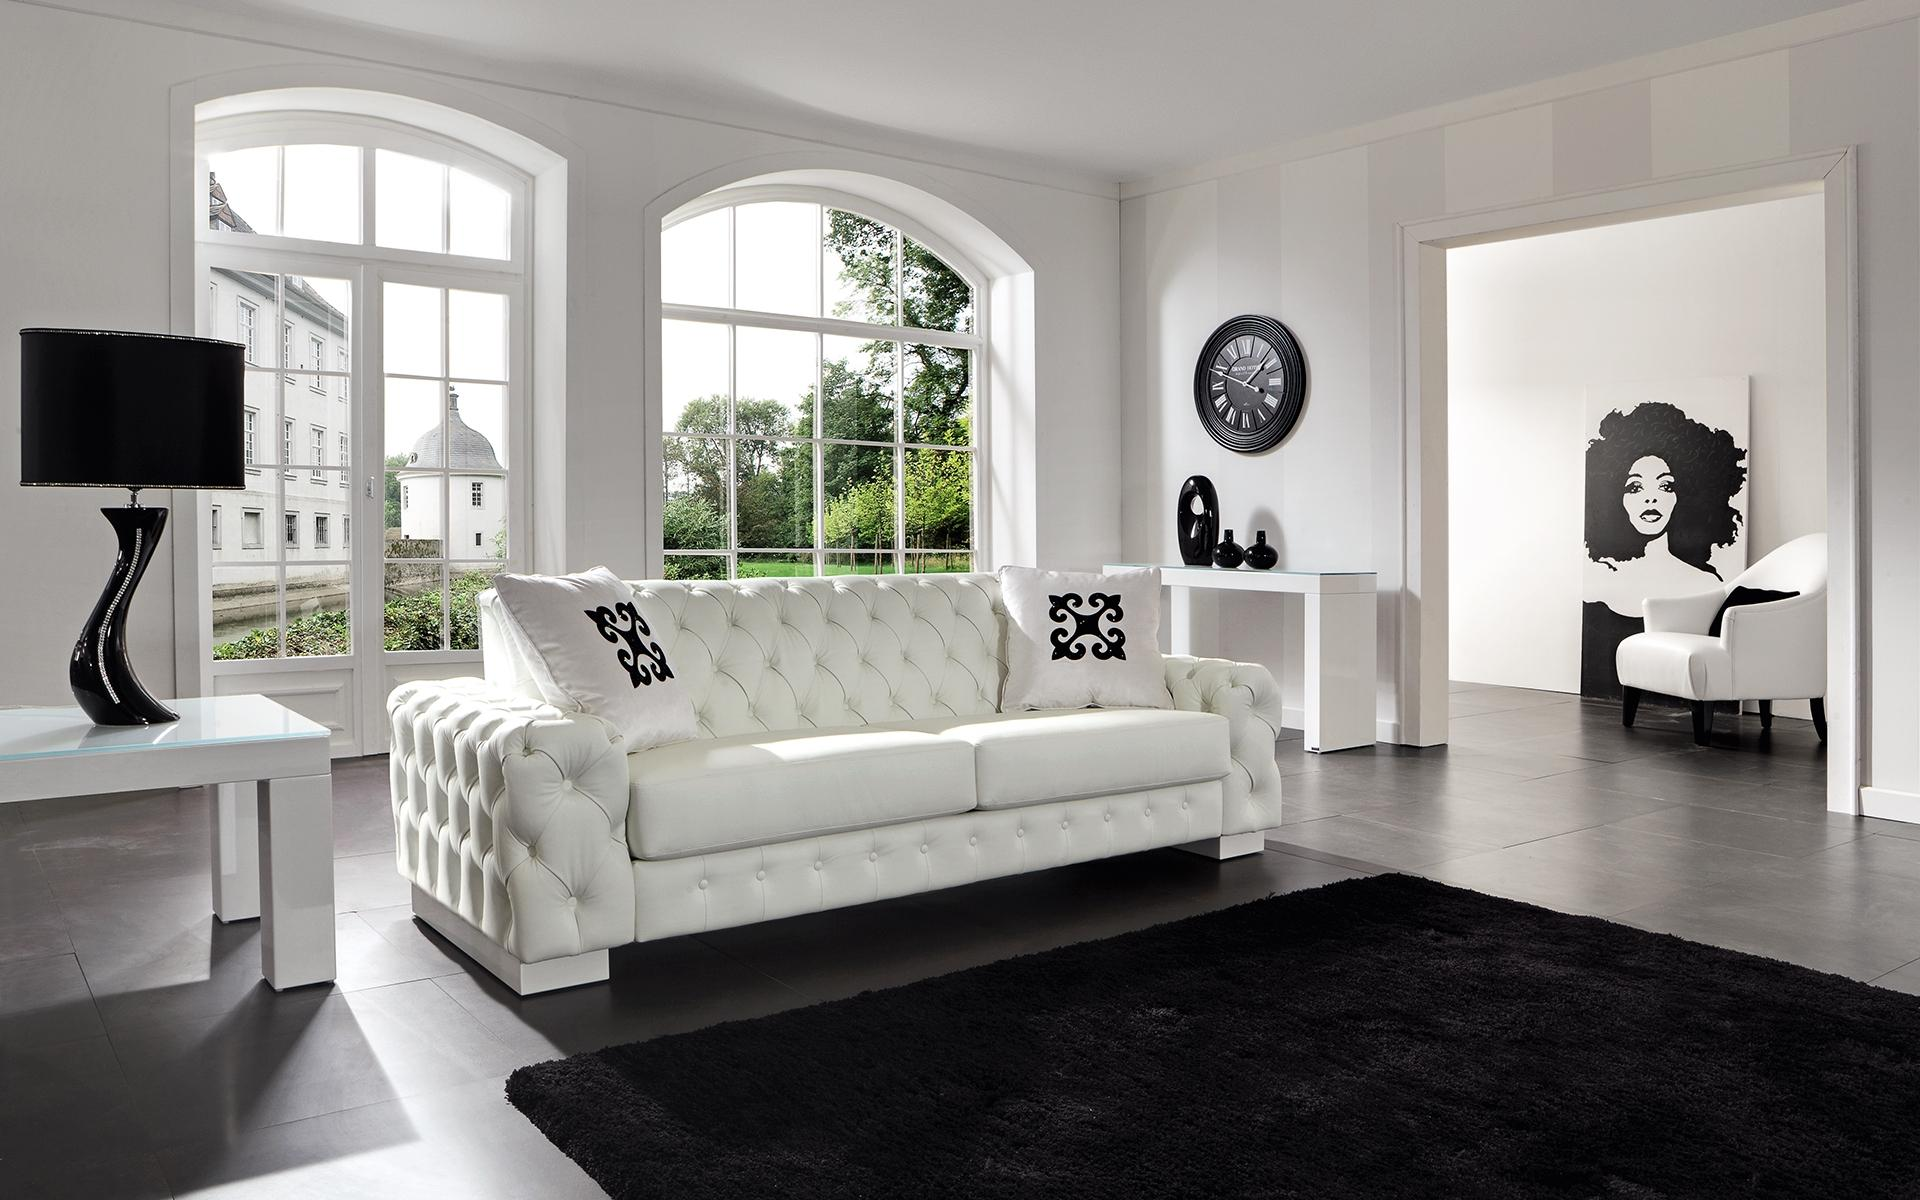 Sessel Klassisch Chesterfield Sofa Baltimore | Finkeldei Polstermöbelmanufaktur